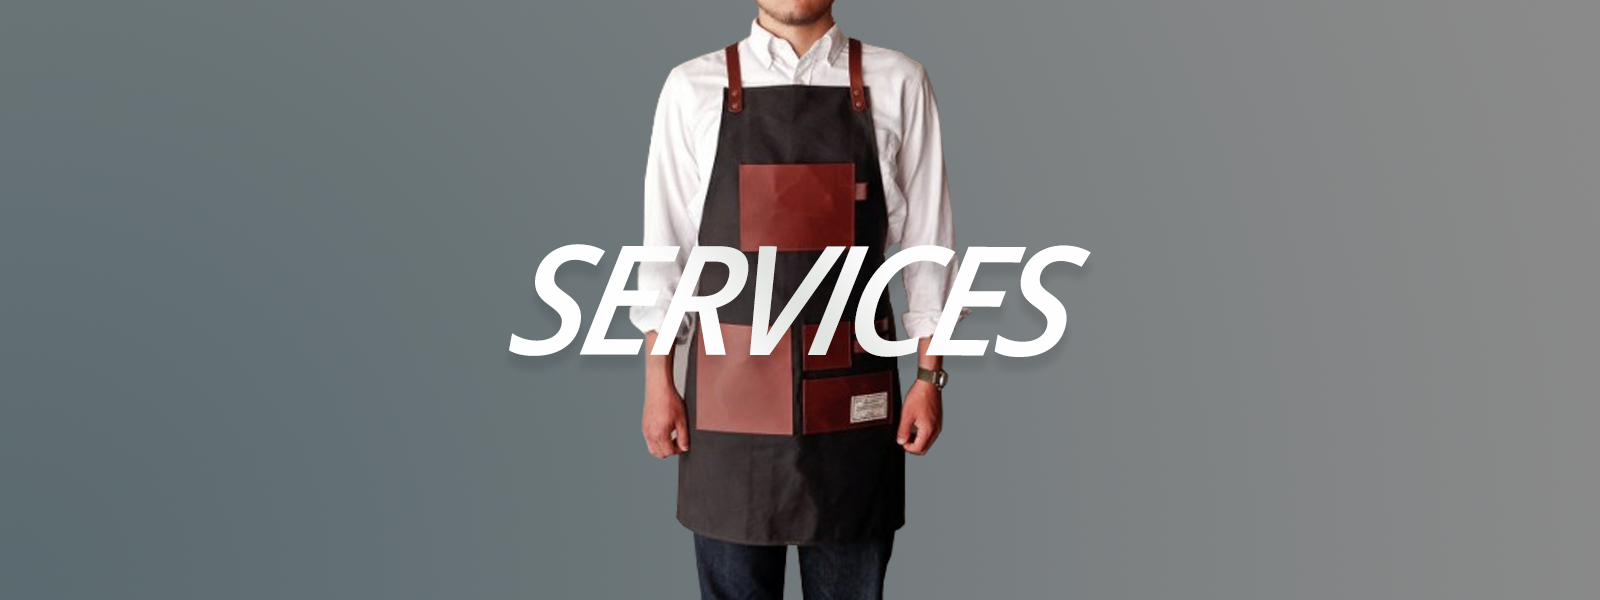 Services Banner.png